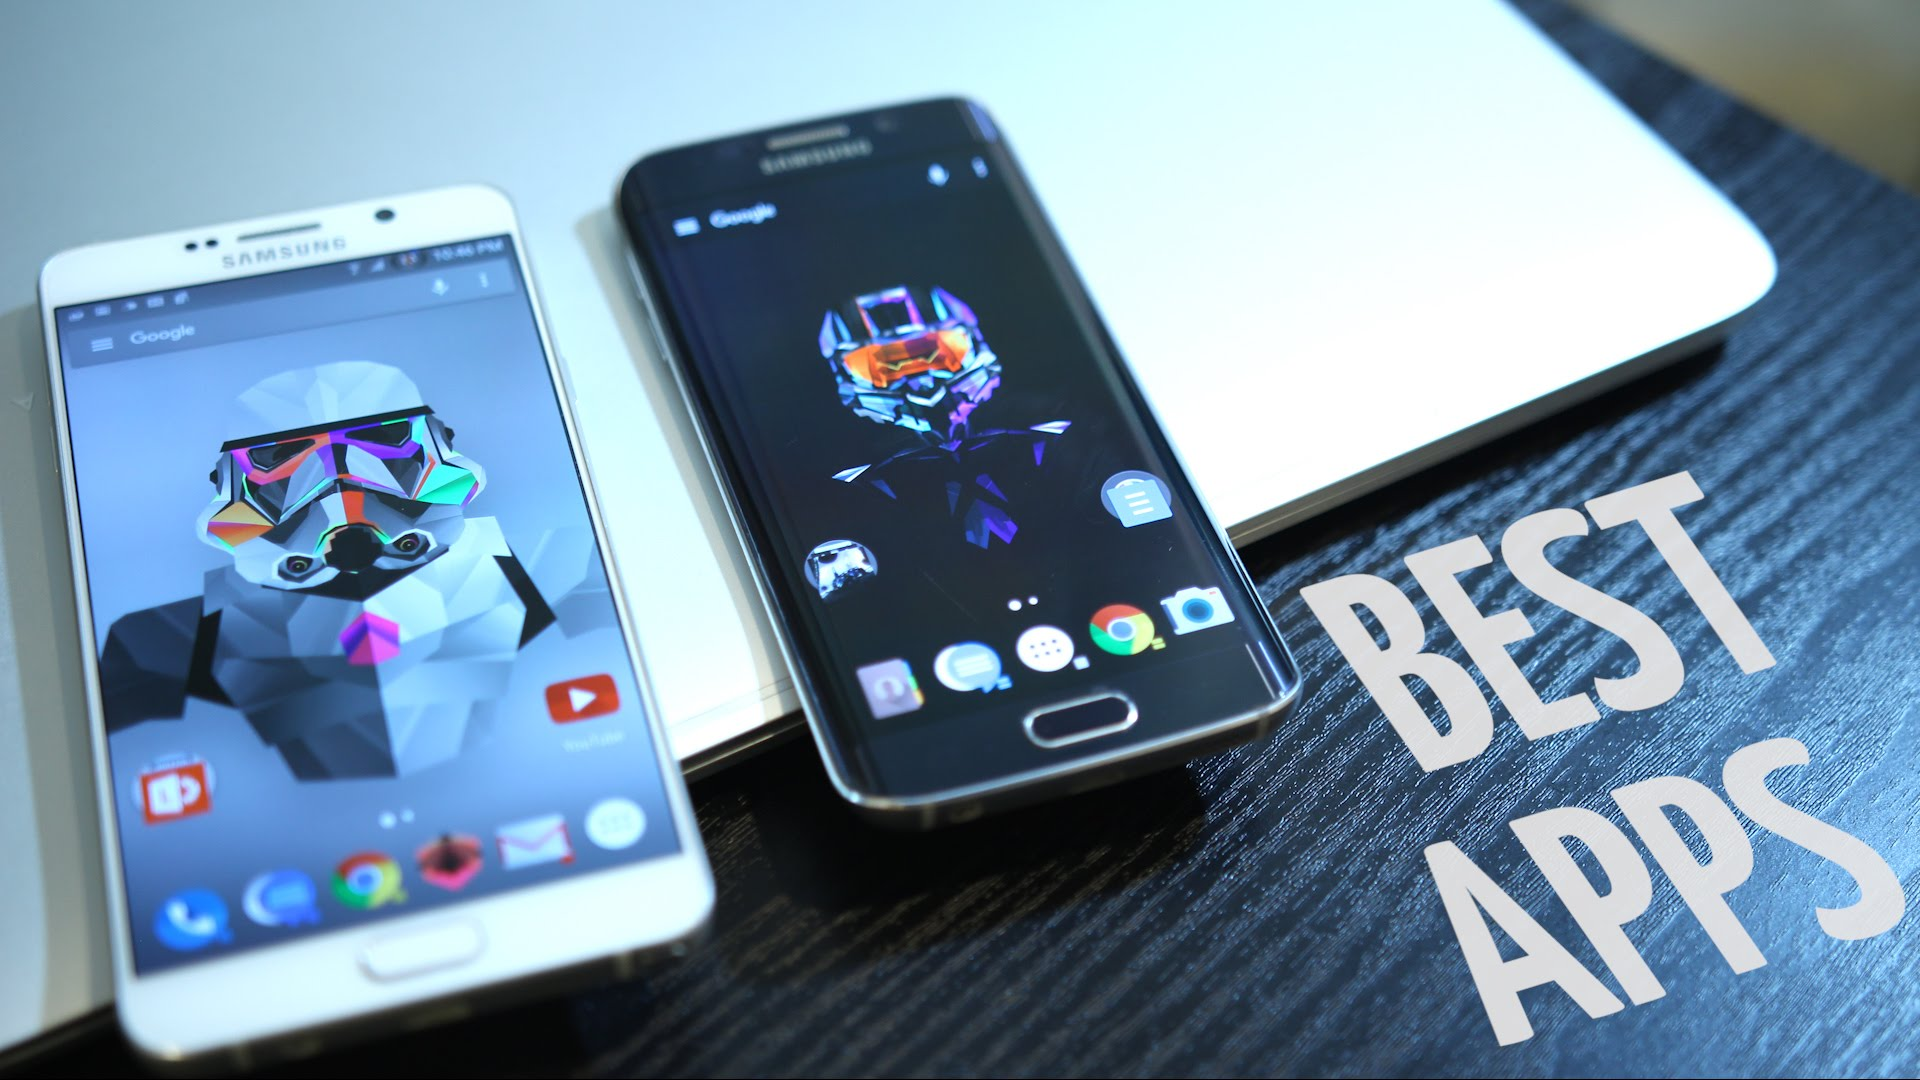 The Best 5 Android Apps of 2018